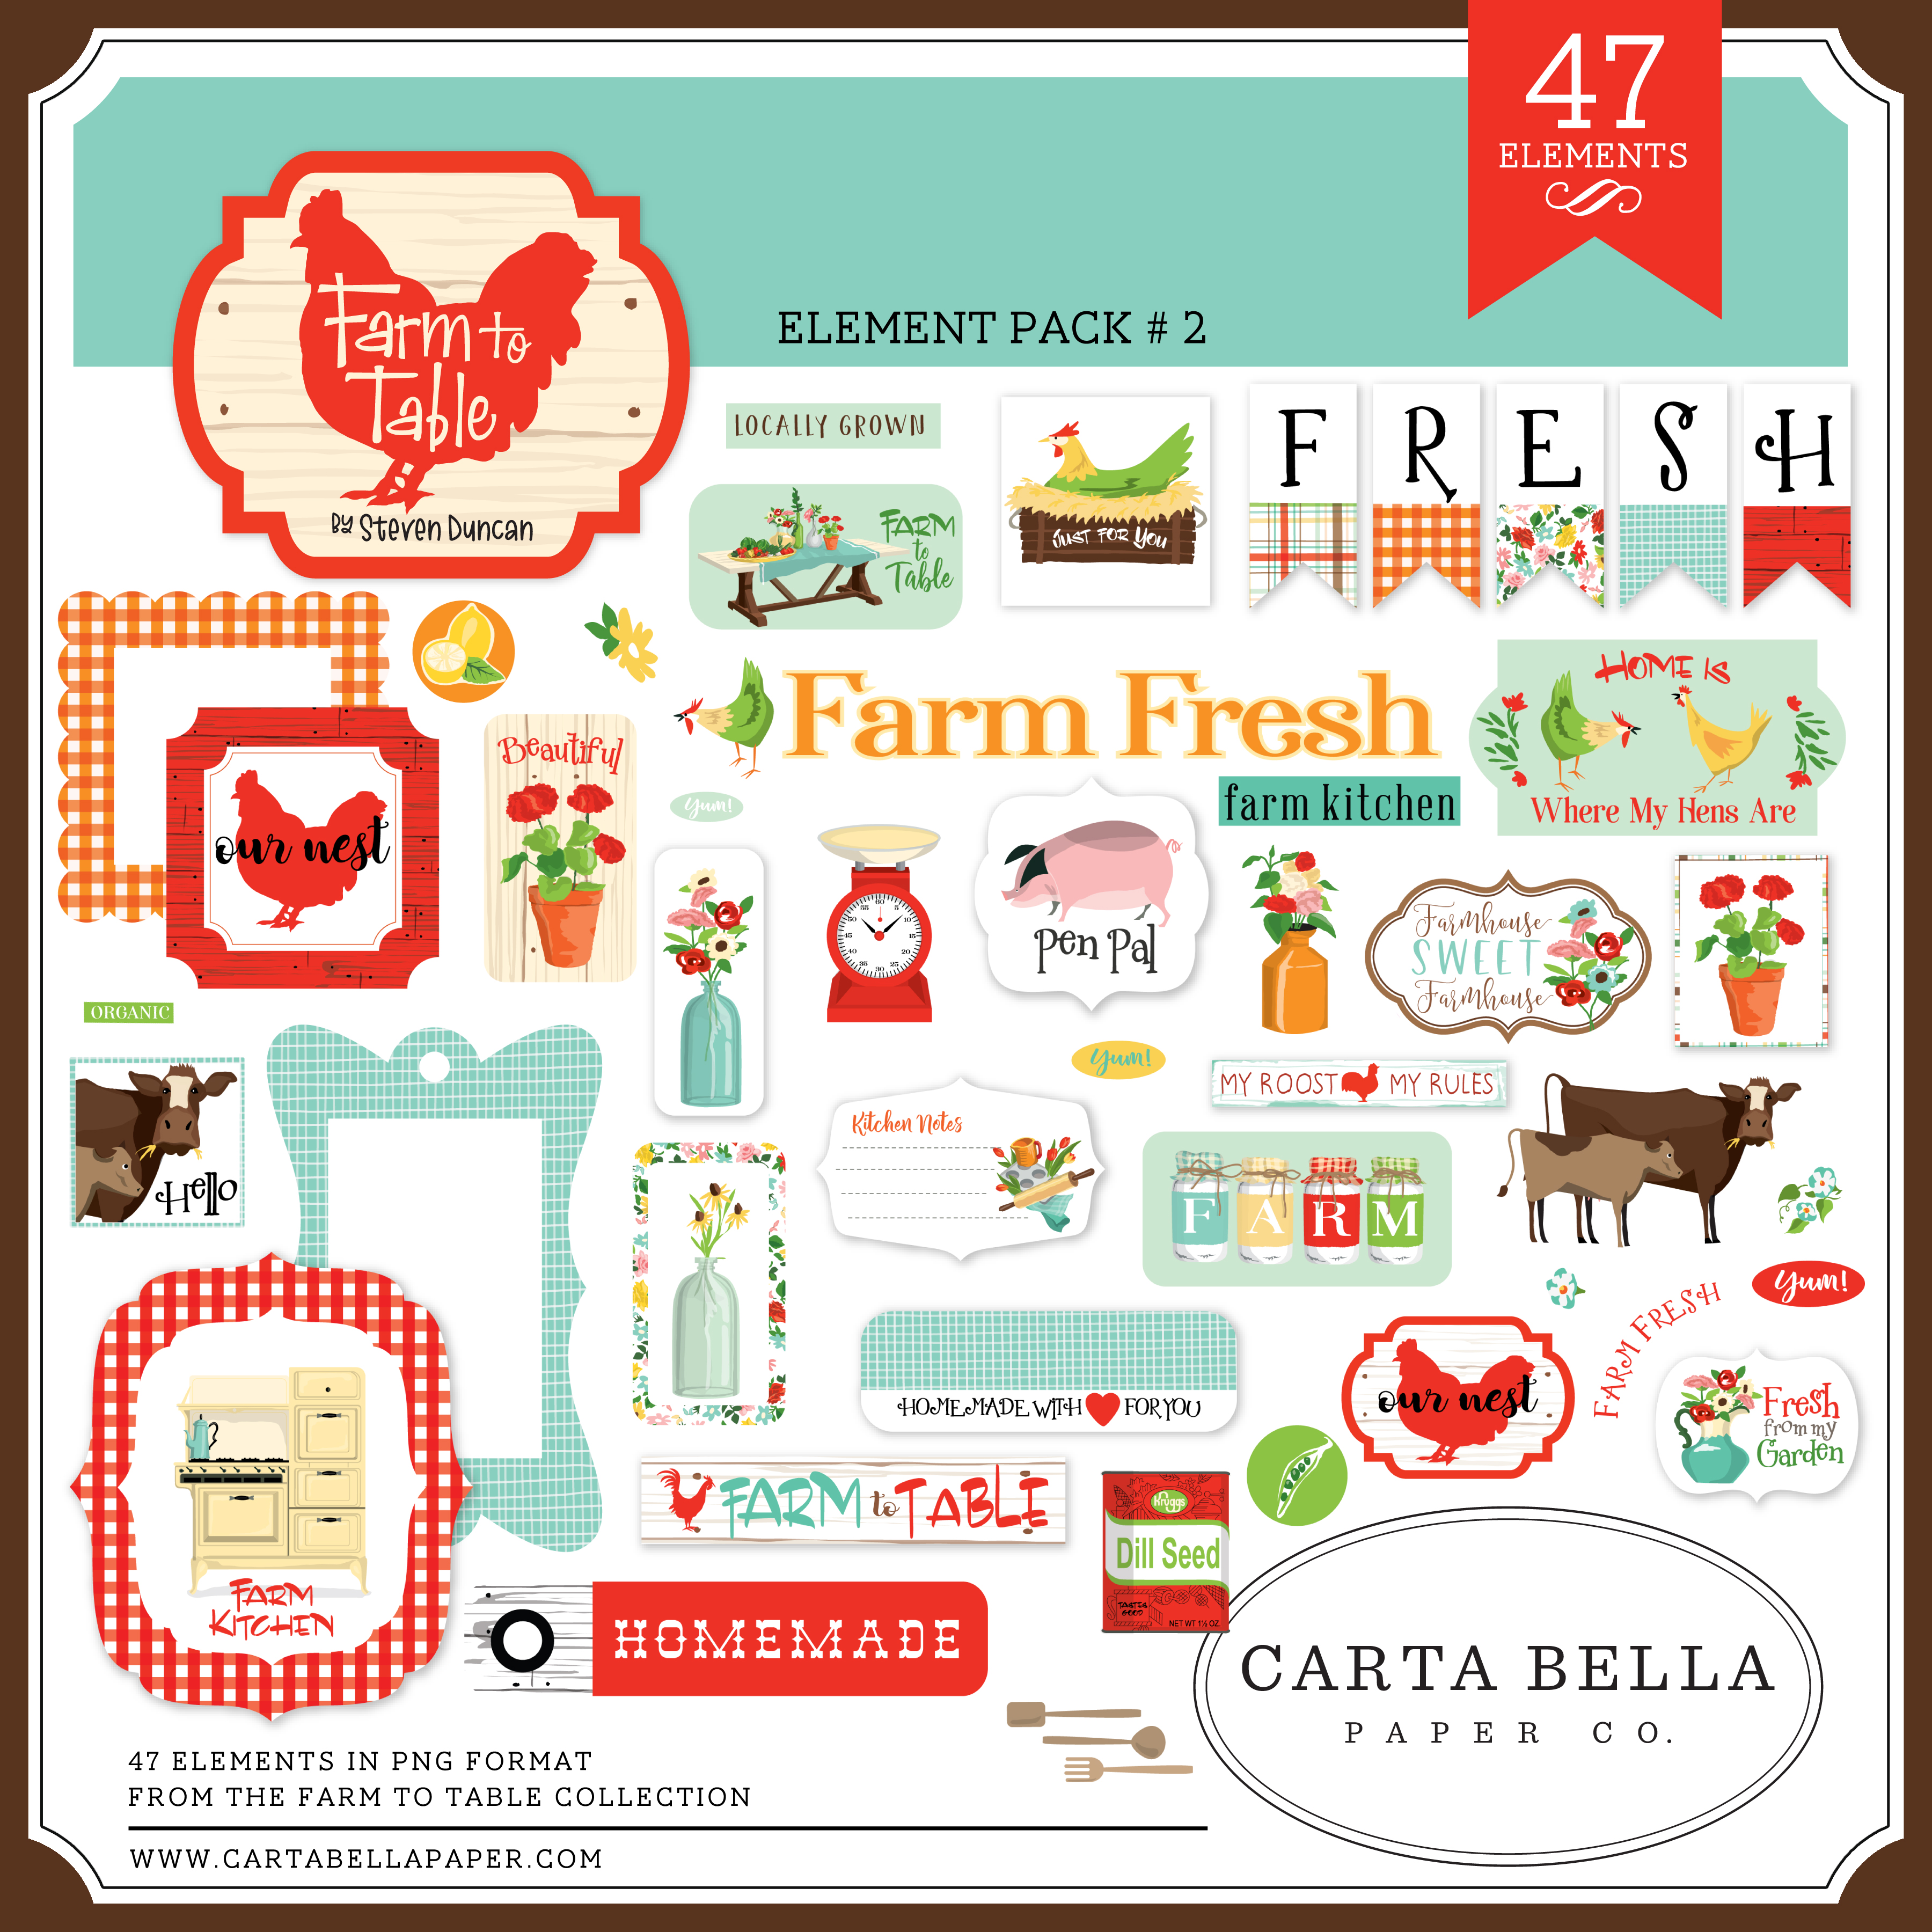 Farm to Table Element Pack #2